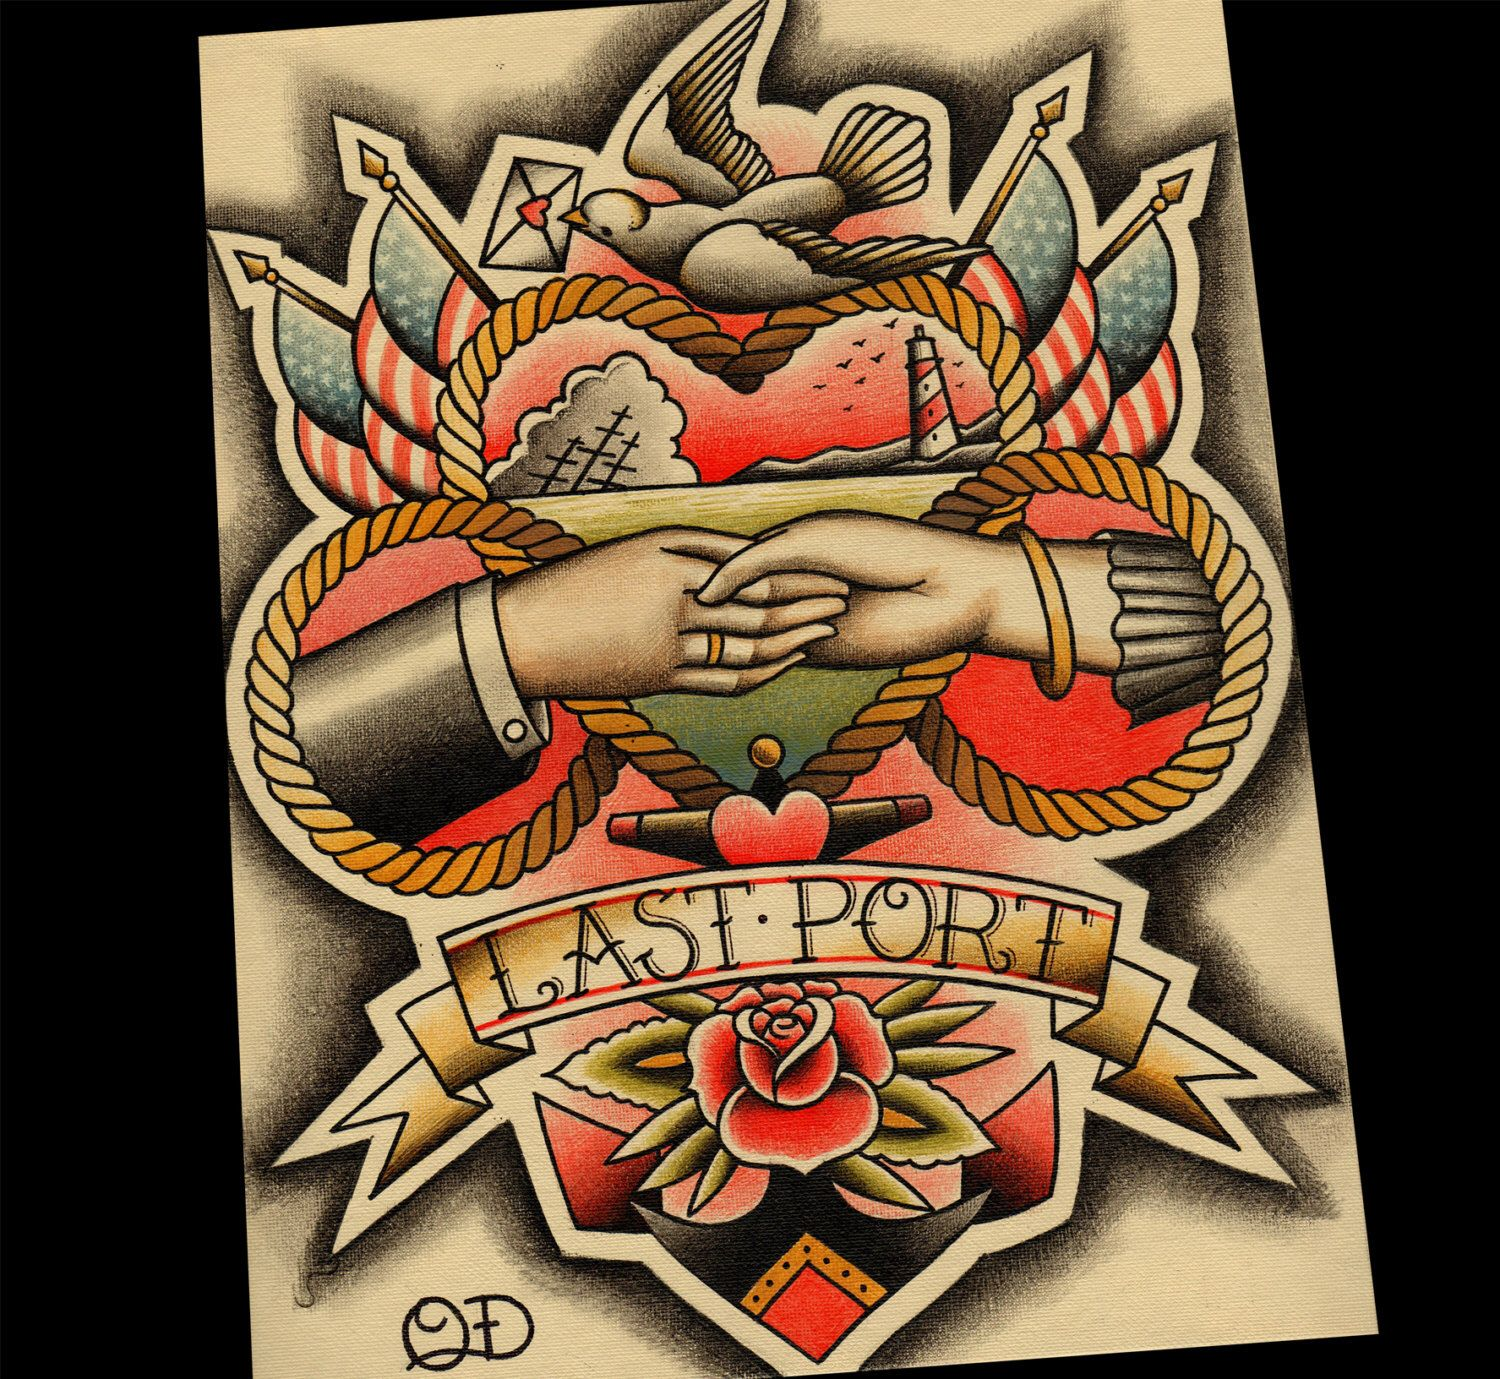 Last Port Traditional Tattoo Print Etsy In 2020 Traditional